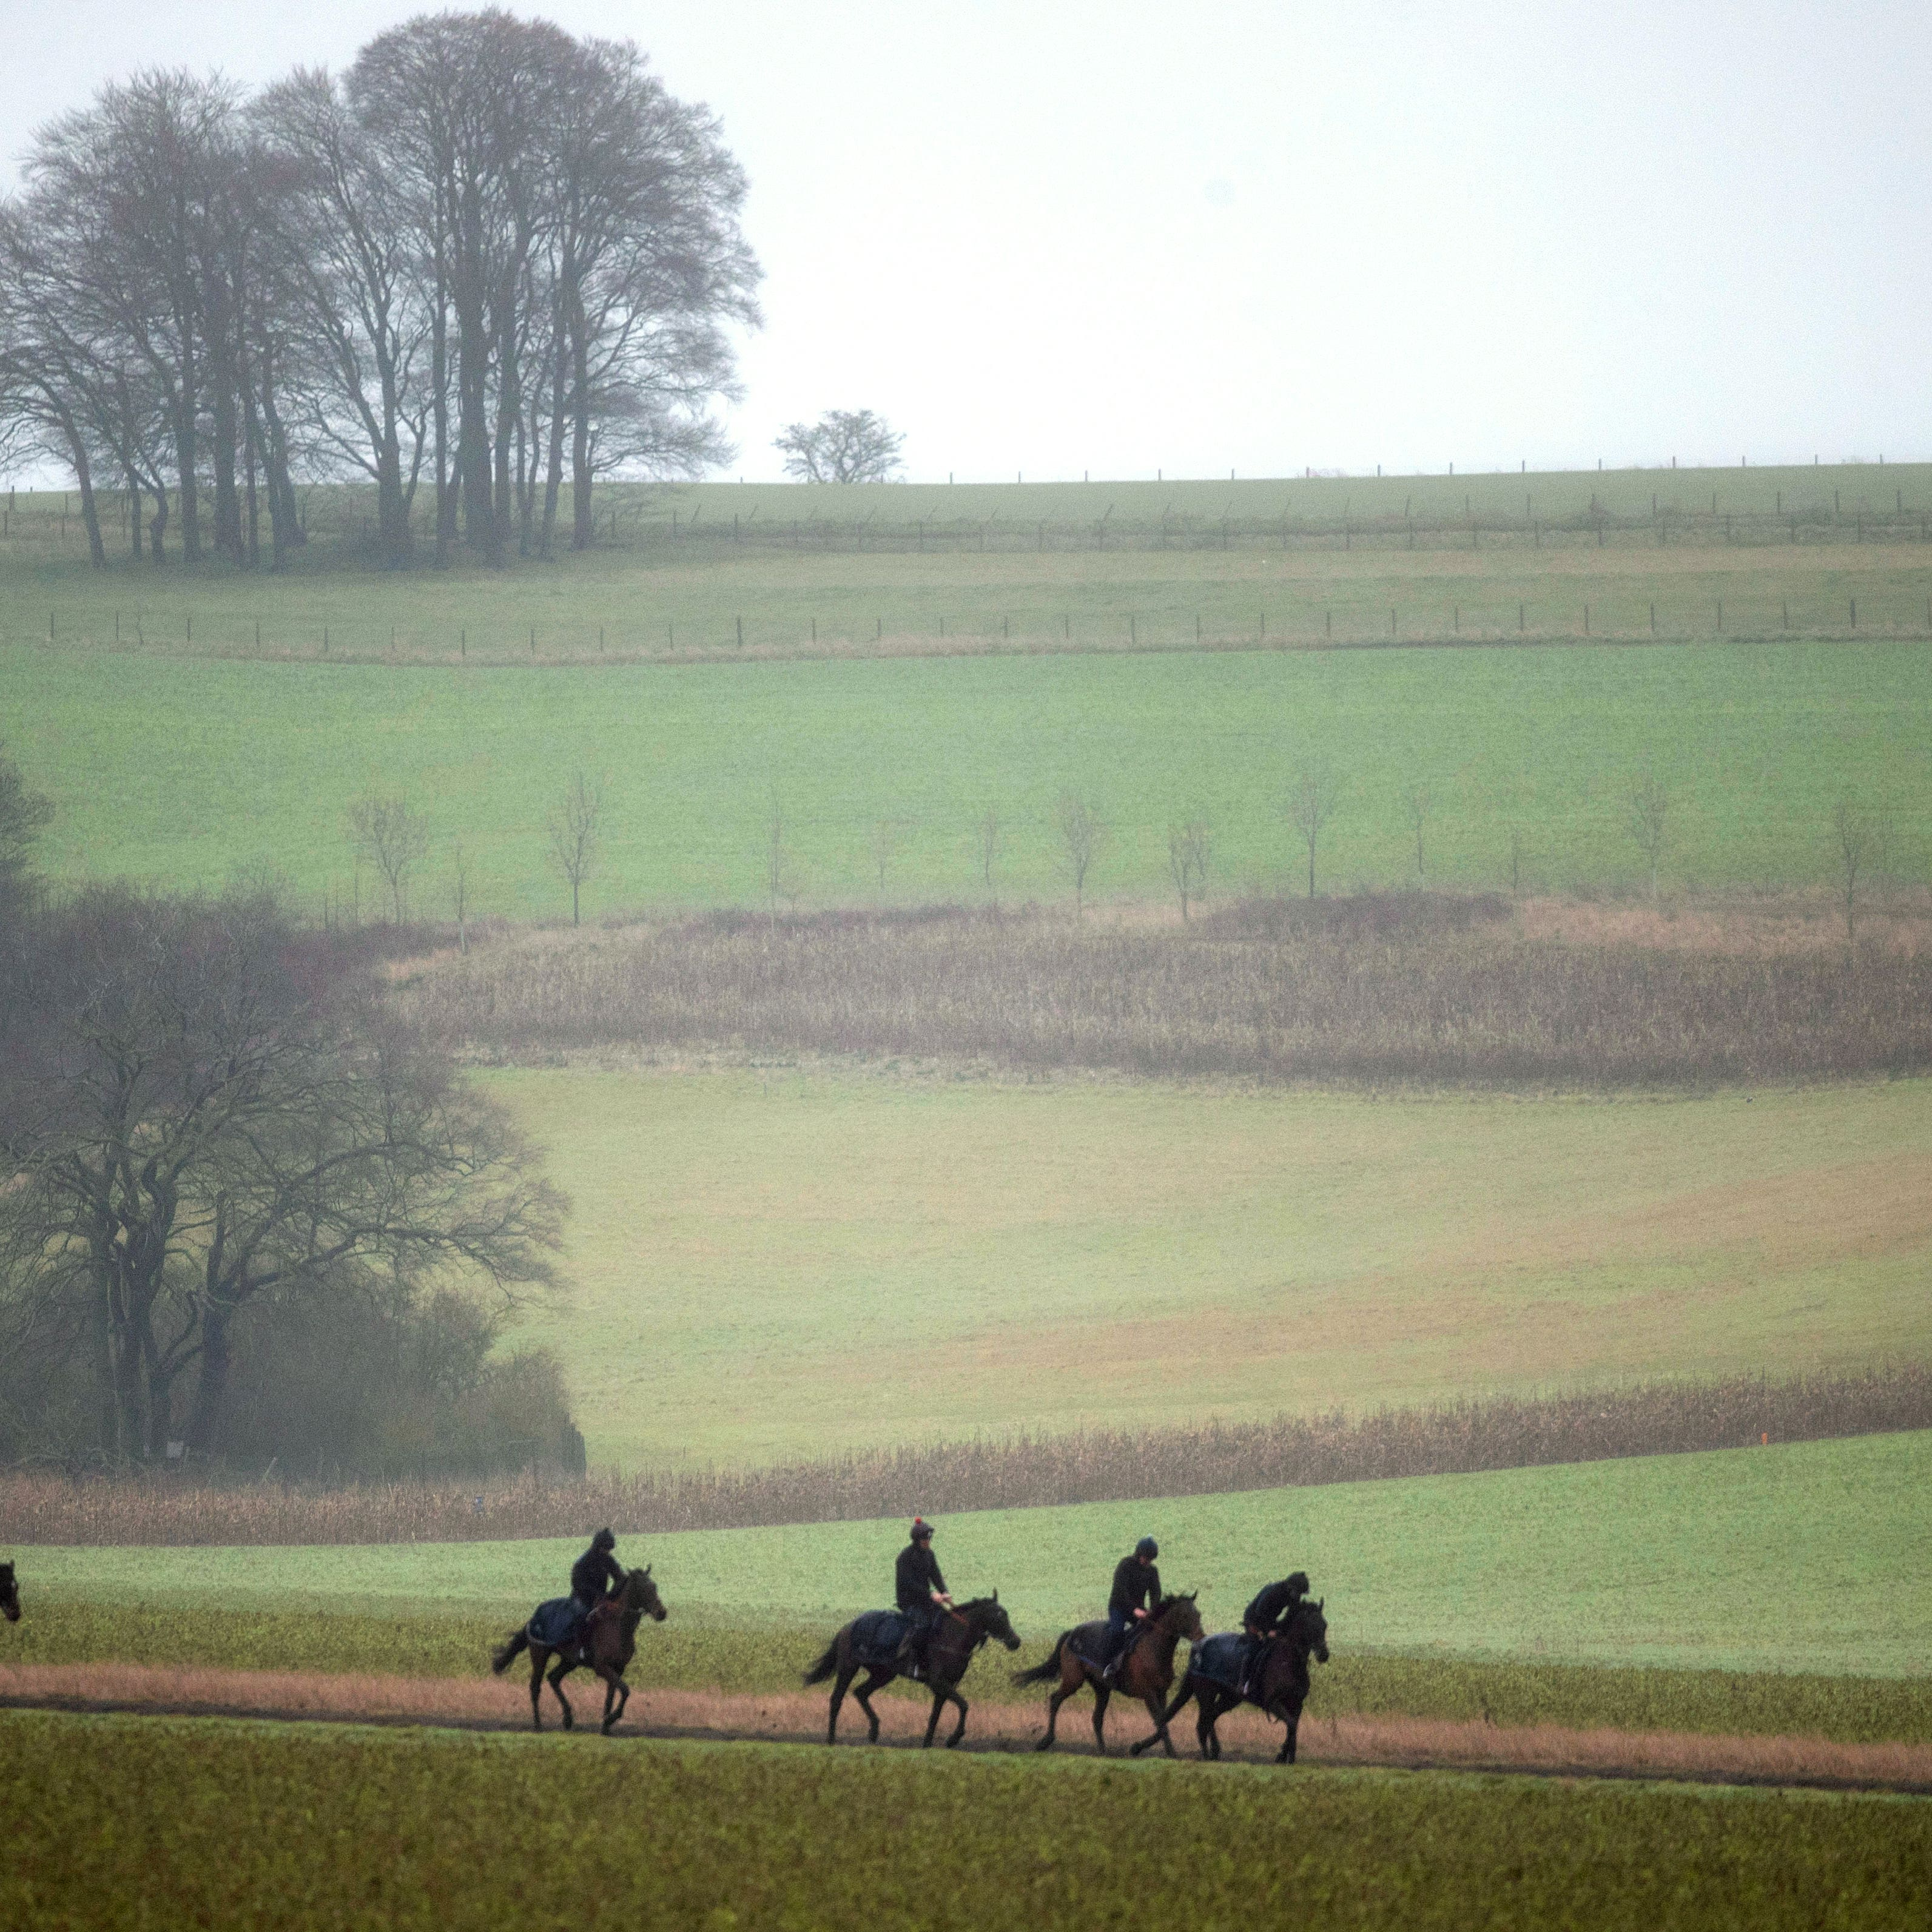 Horses return after being exercised on the gallops at Lambourn